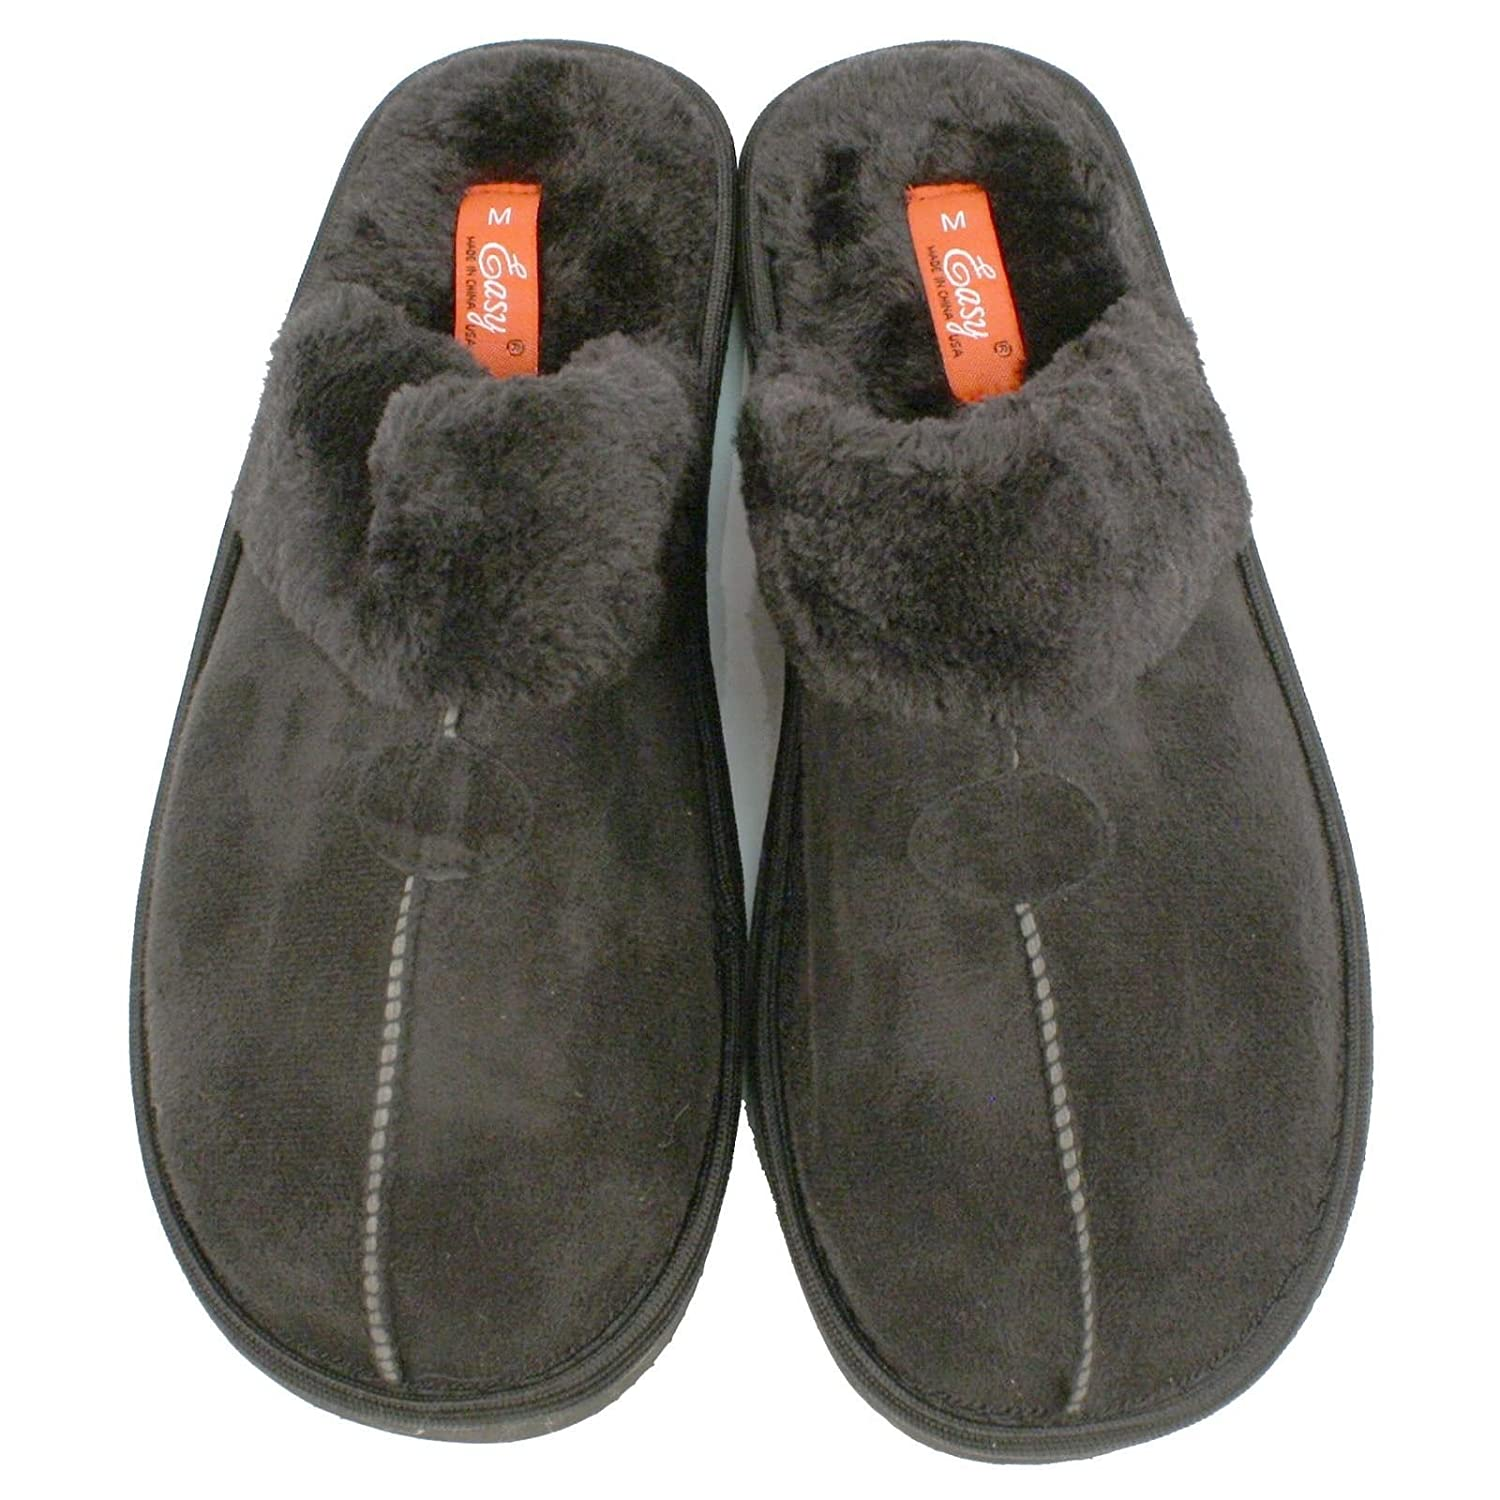 Mens Bedroom Slippers Leather Amazoncom Mens House Closed Front Slippers With Fur Black